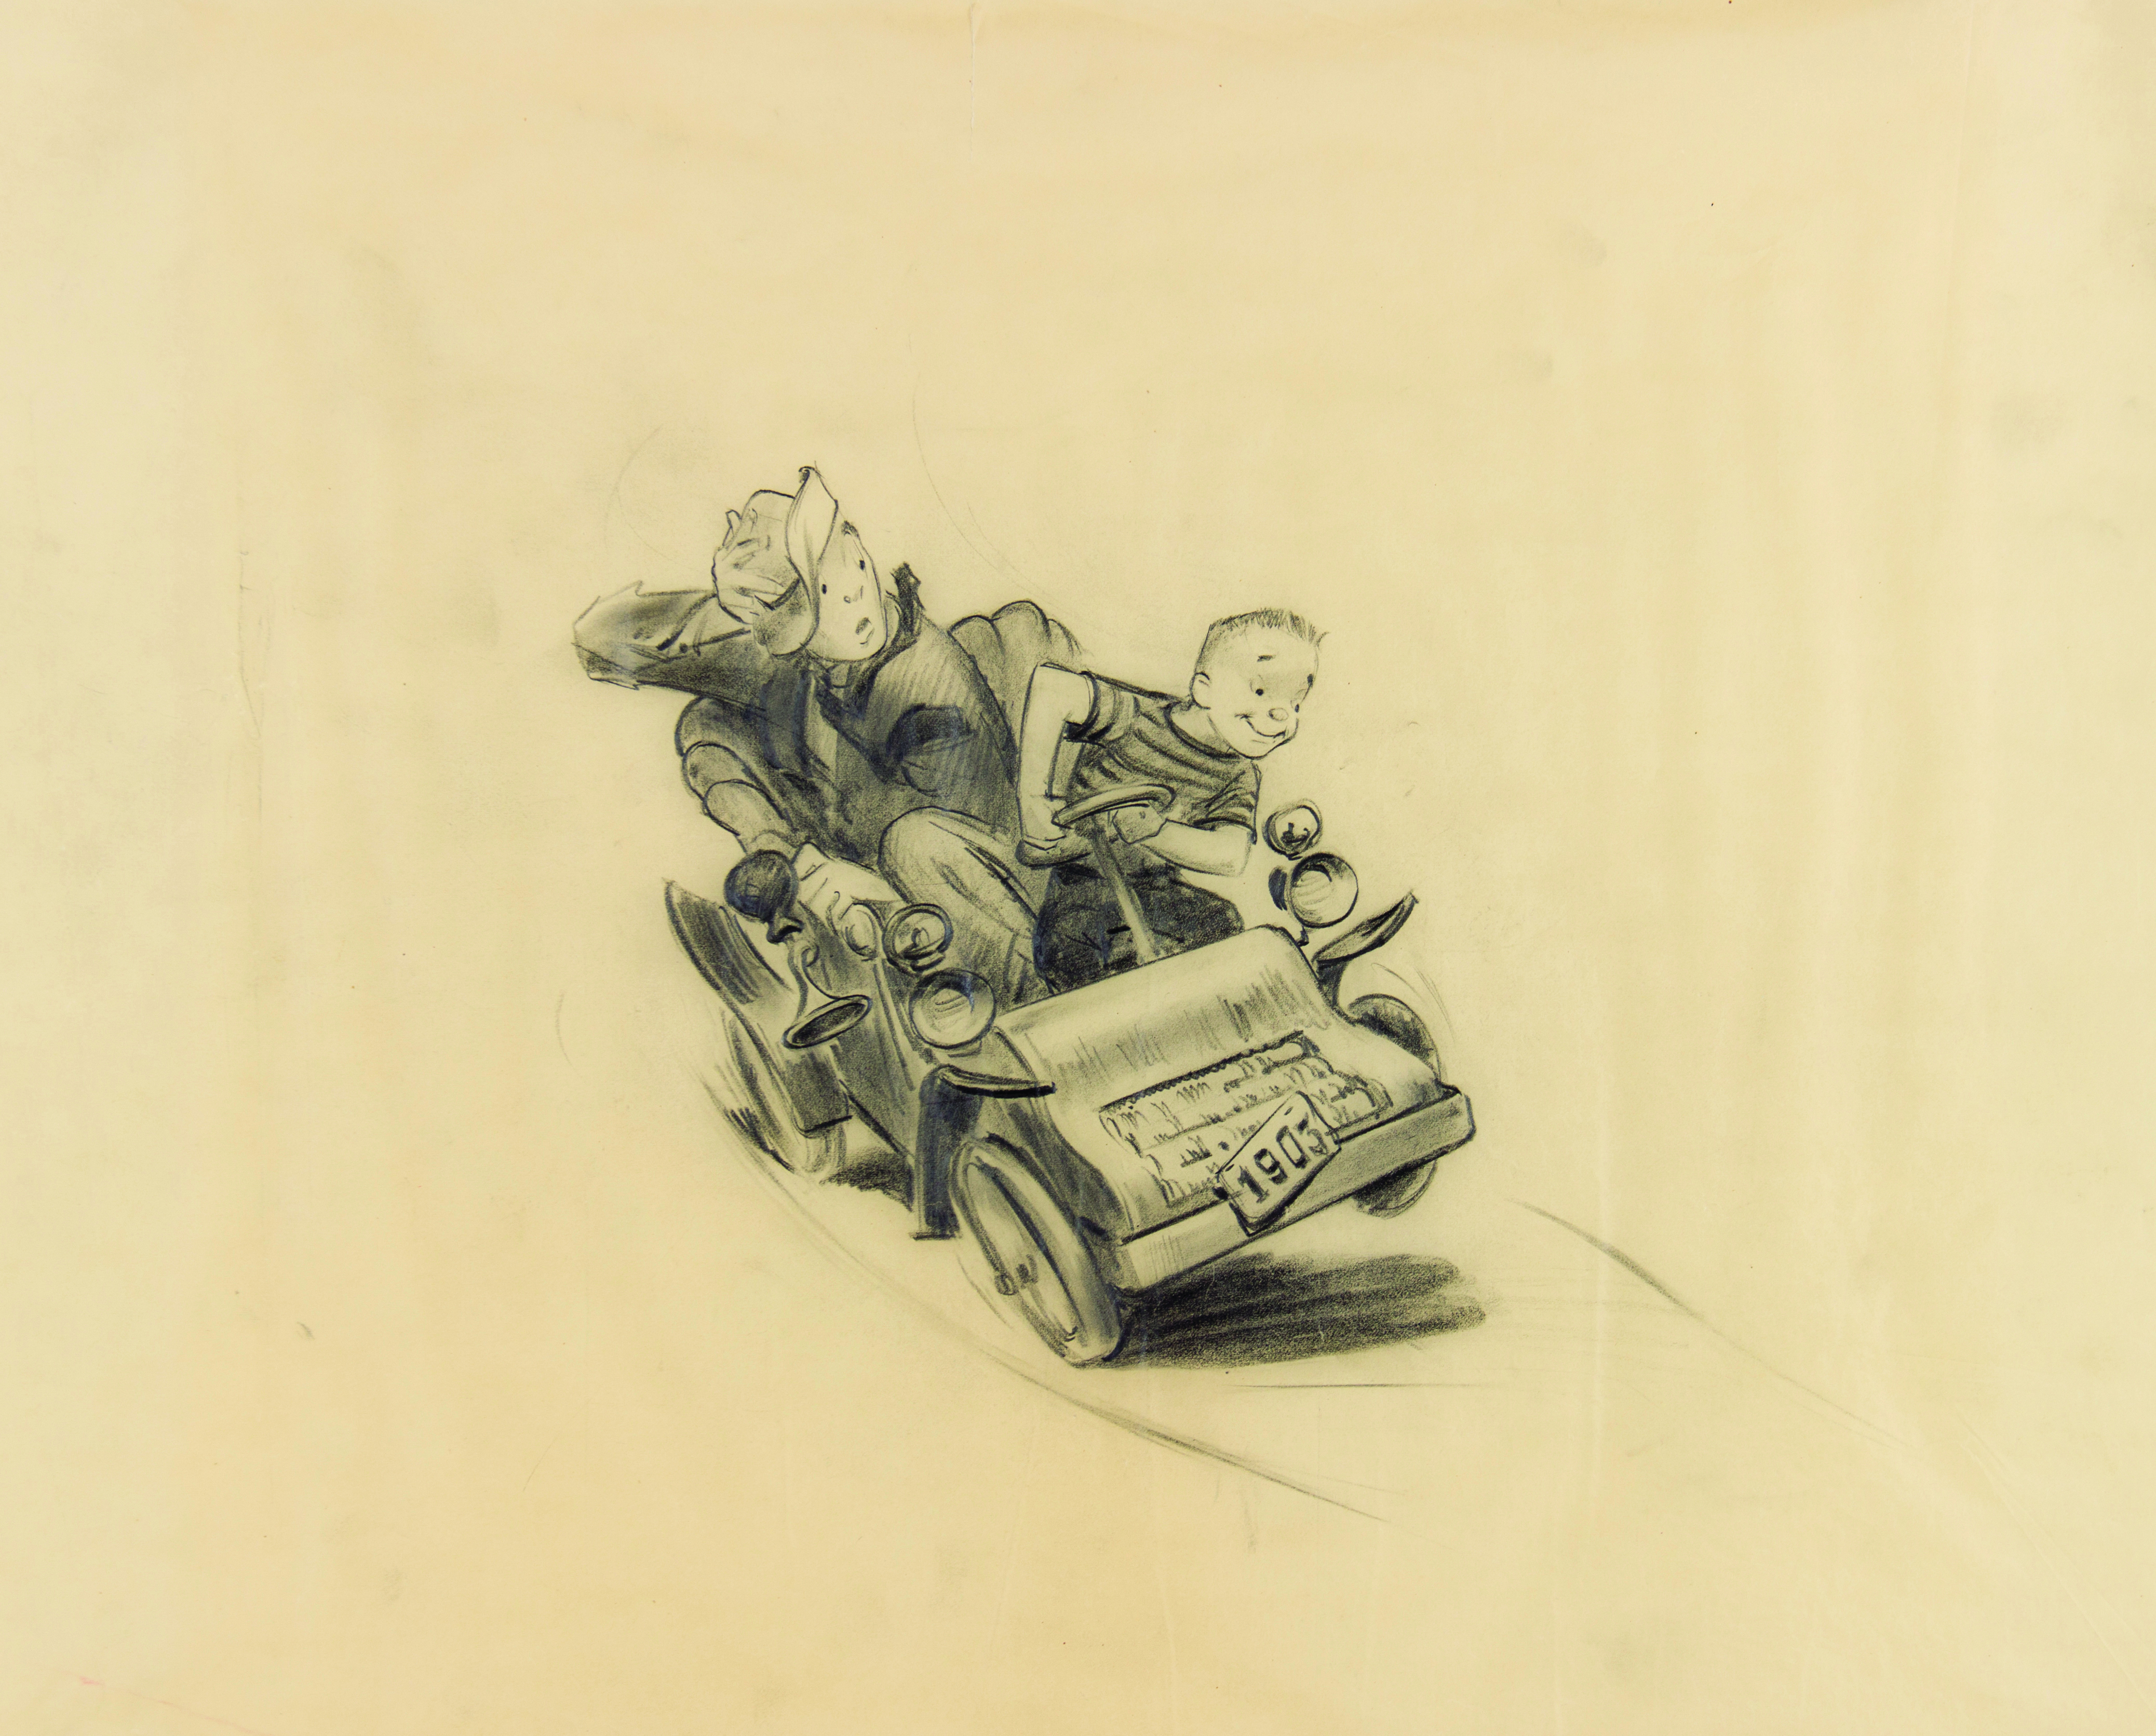 Mr Toad's Wild Ride Vehicle concept drawing, ca. 1954, by Imagineer Bruce Bushman